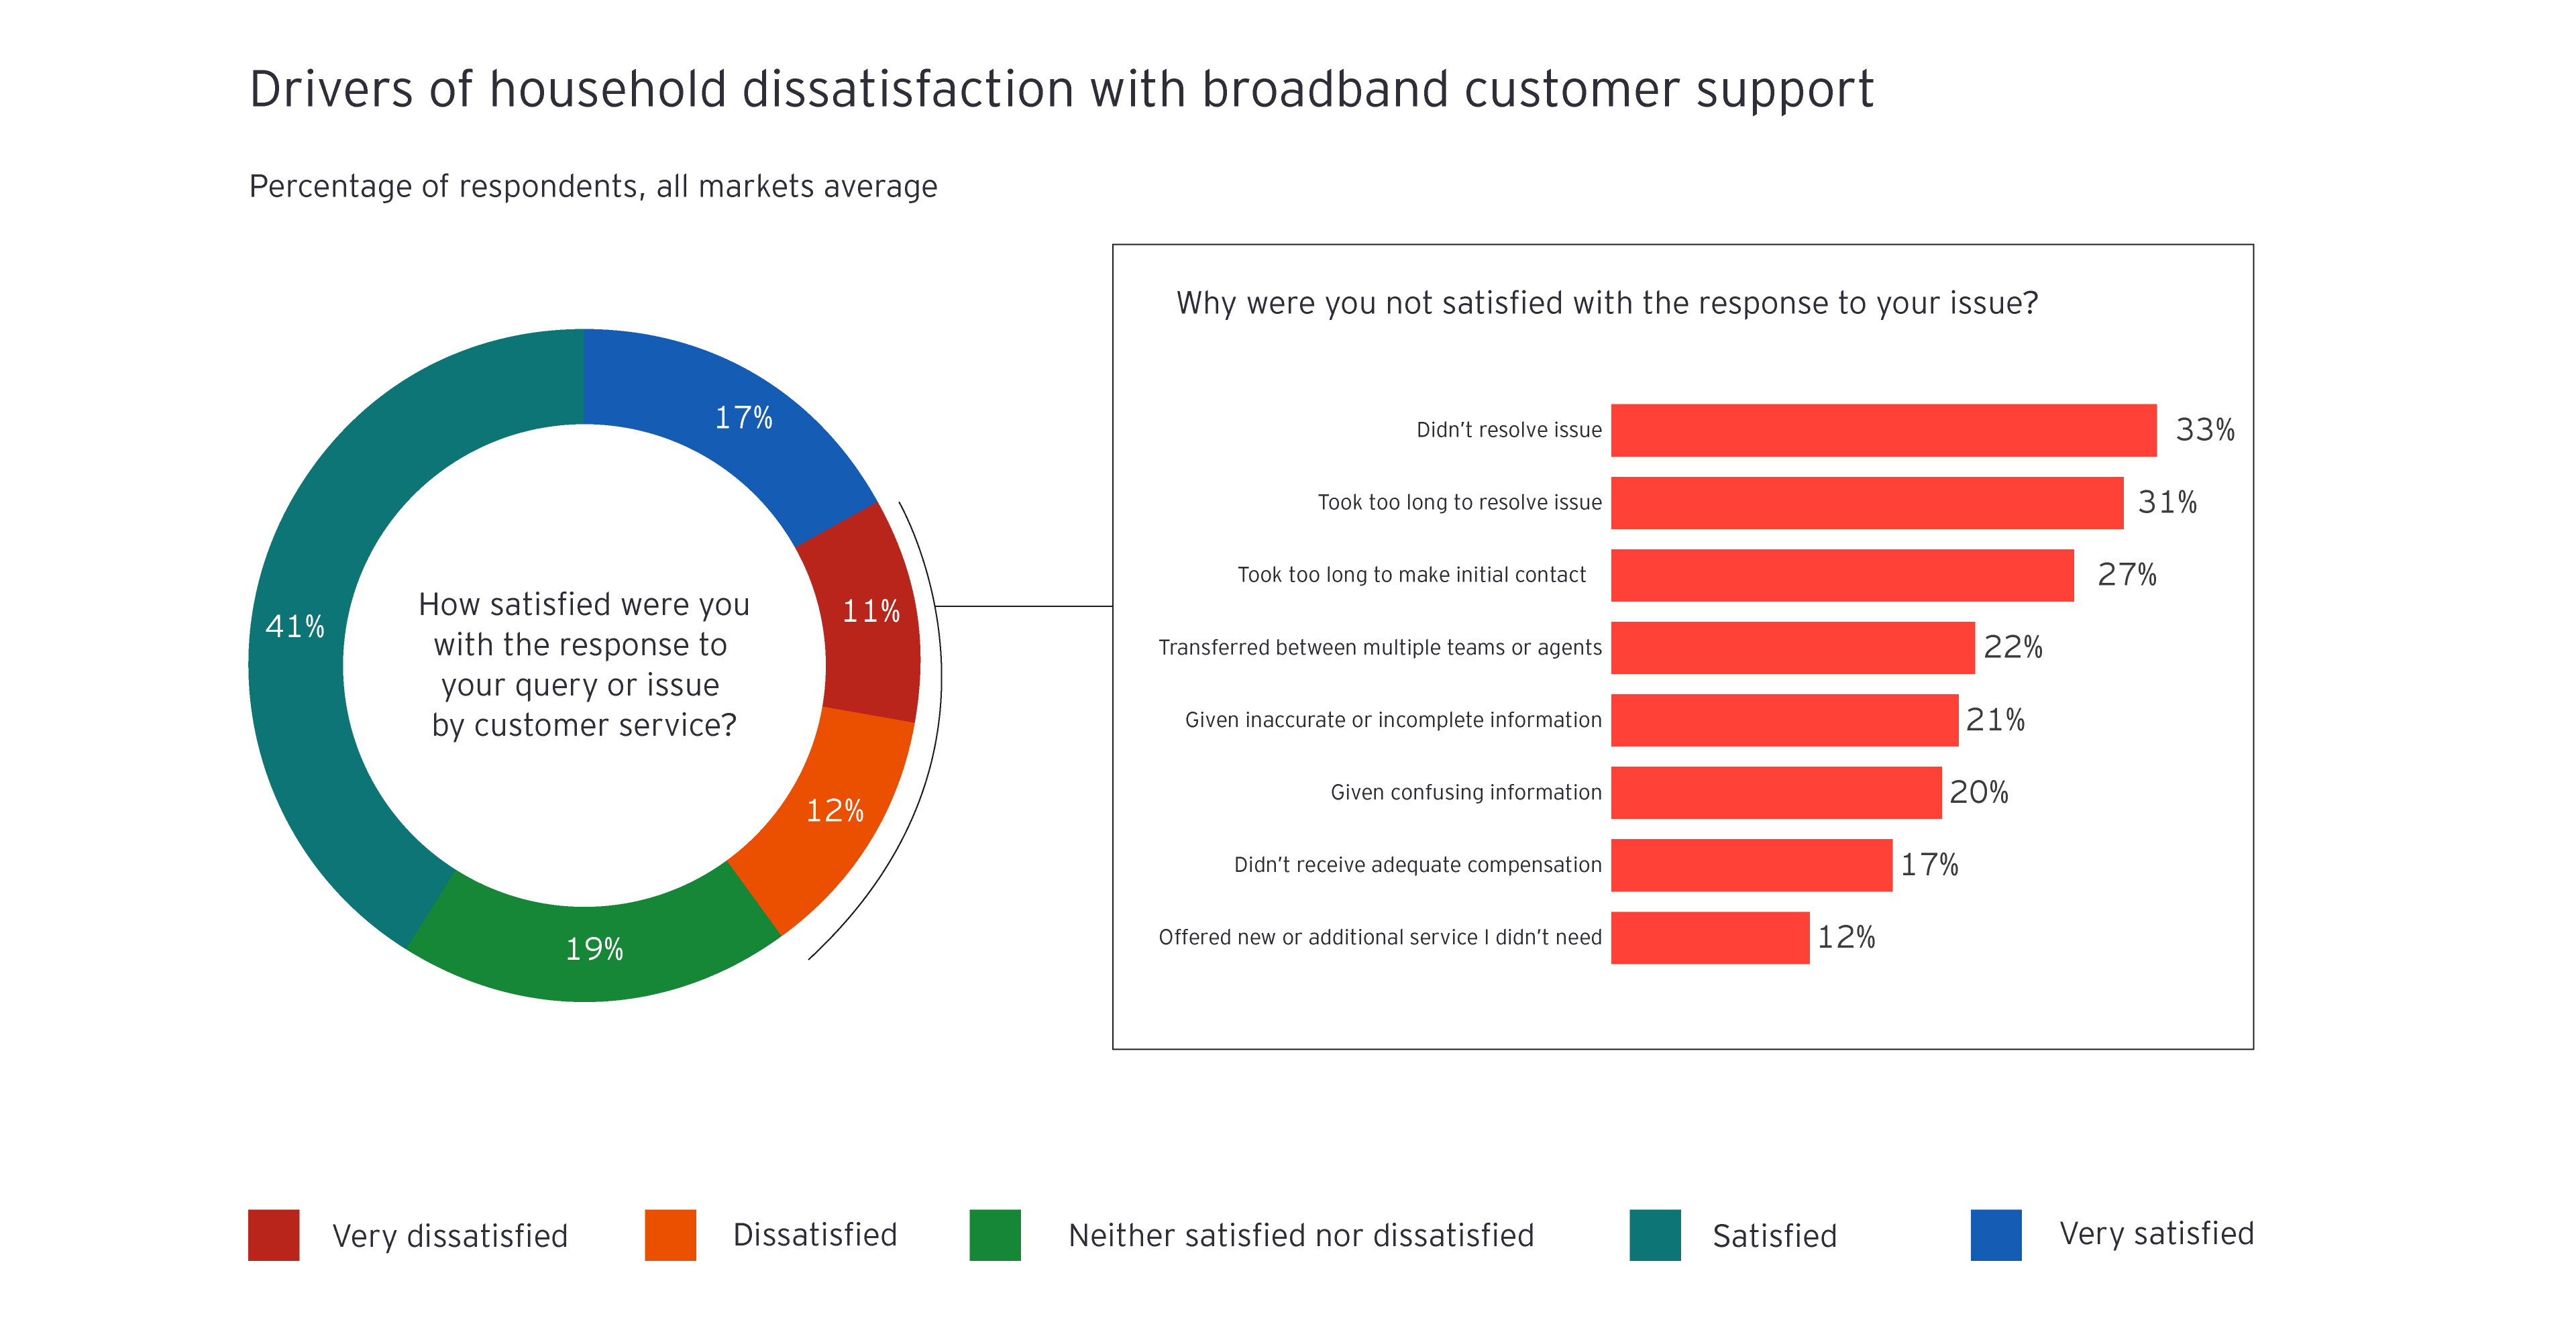 Drivers of household dissatisfaction with broadband customer support